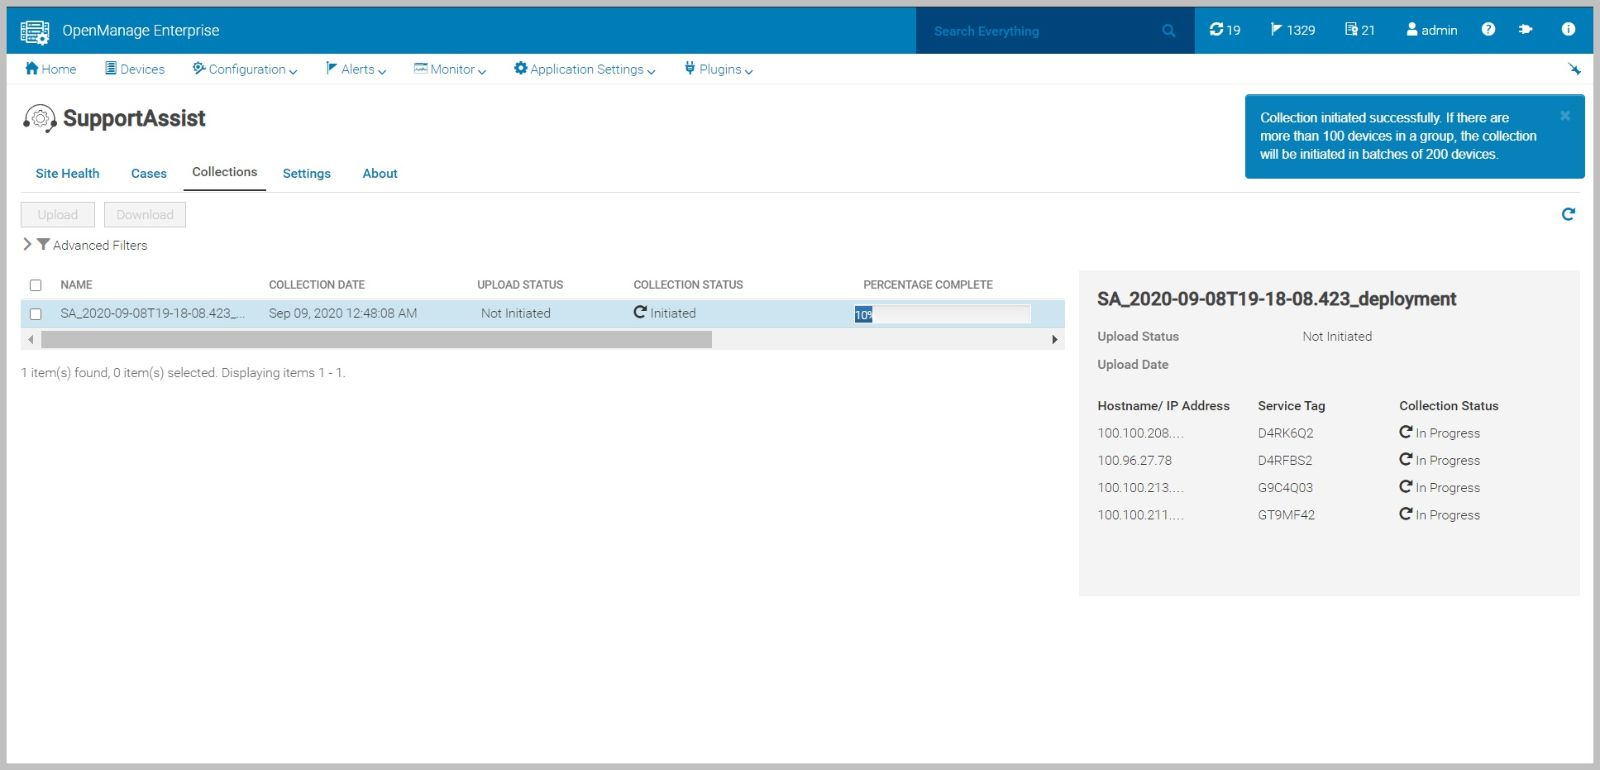 Dell EMC OpenManage Enterprise SupportAssist